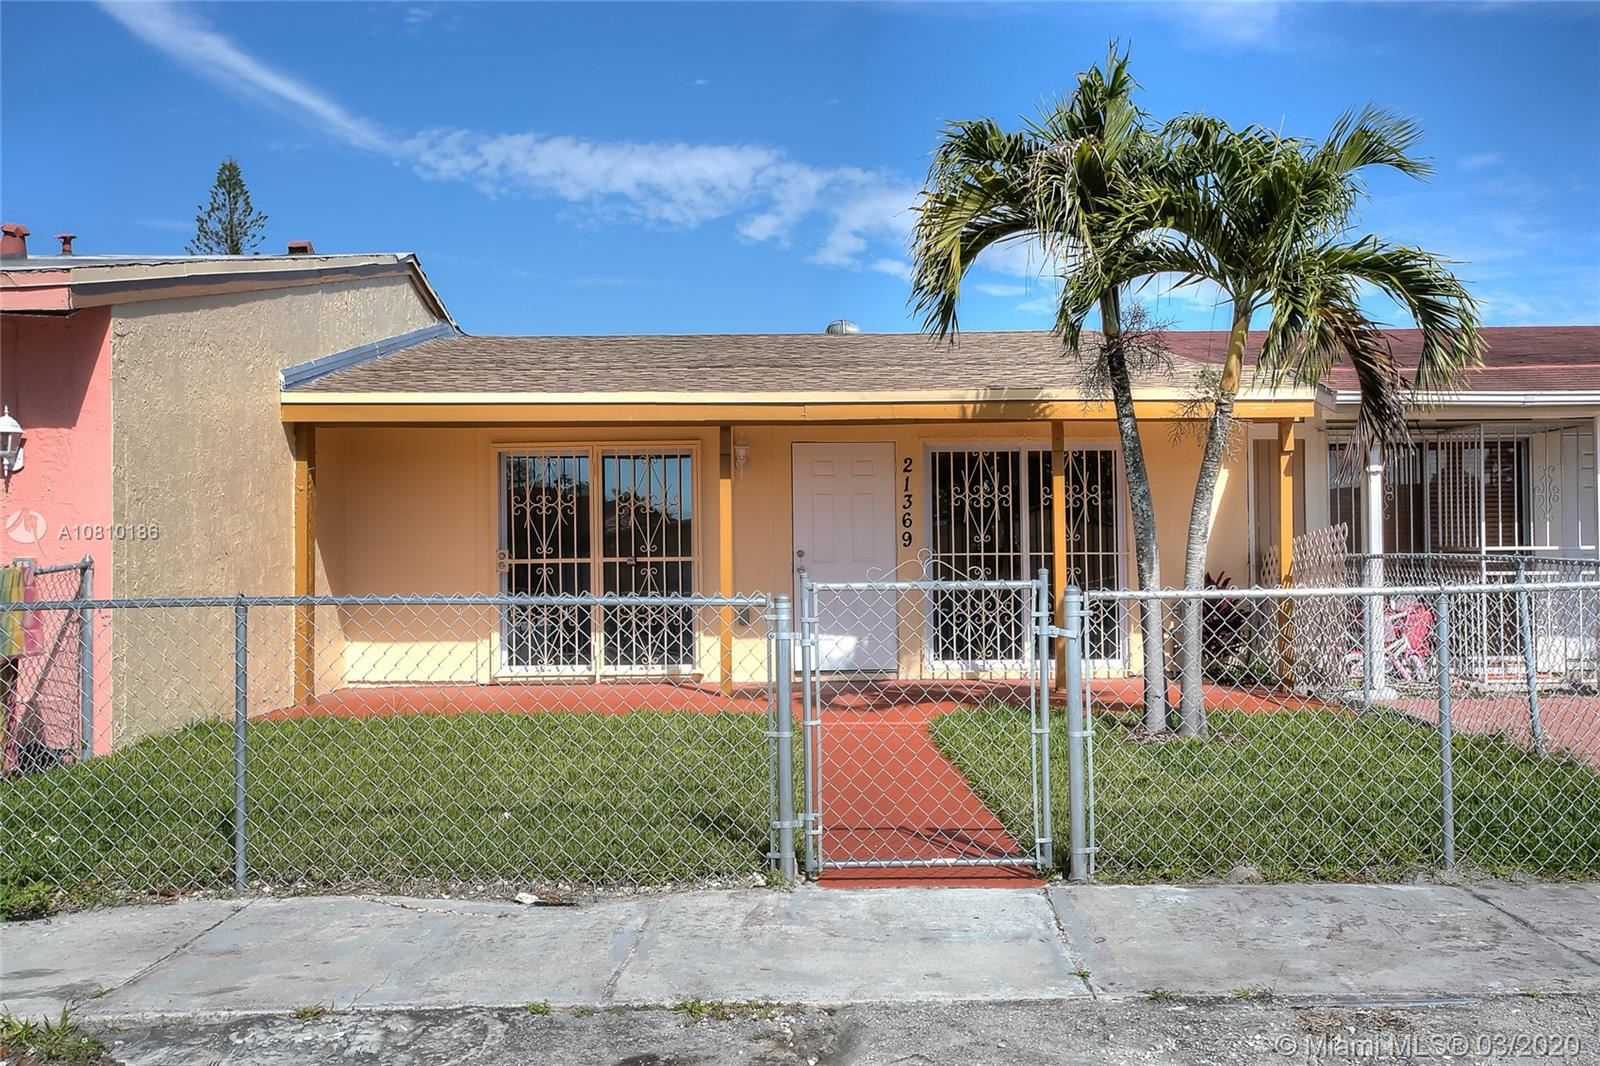 21369 NW 39th Ave, Miami Gardens, FL 33055 - #: A10810186